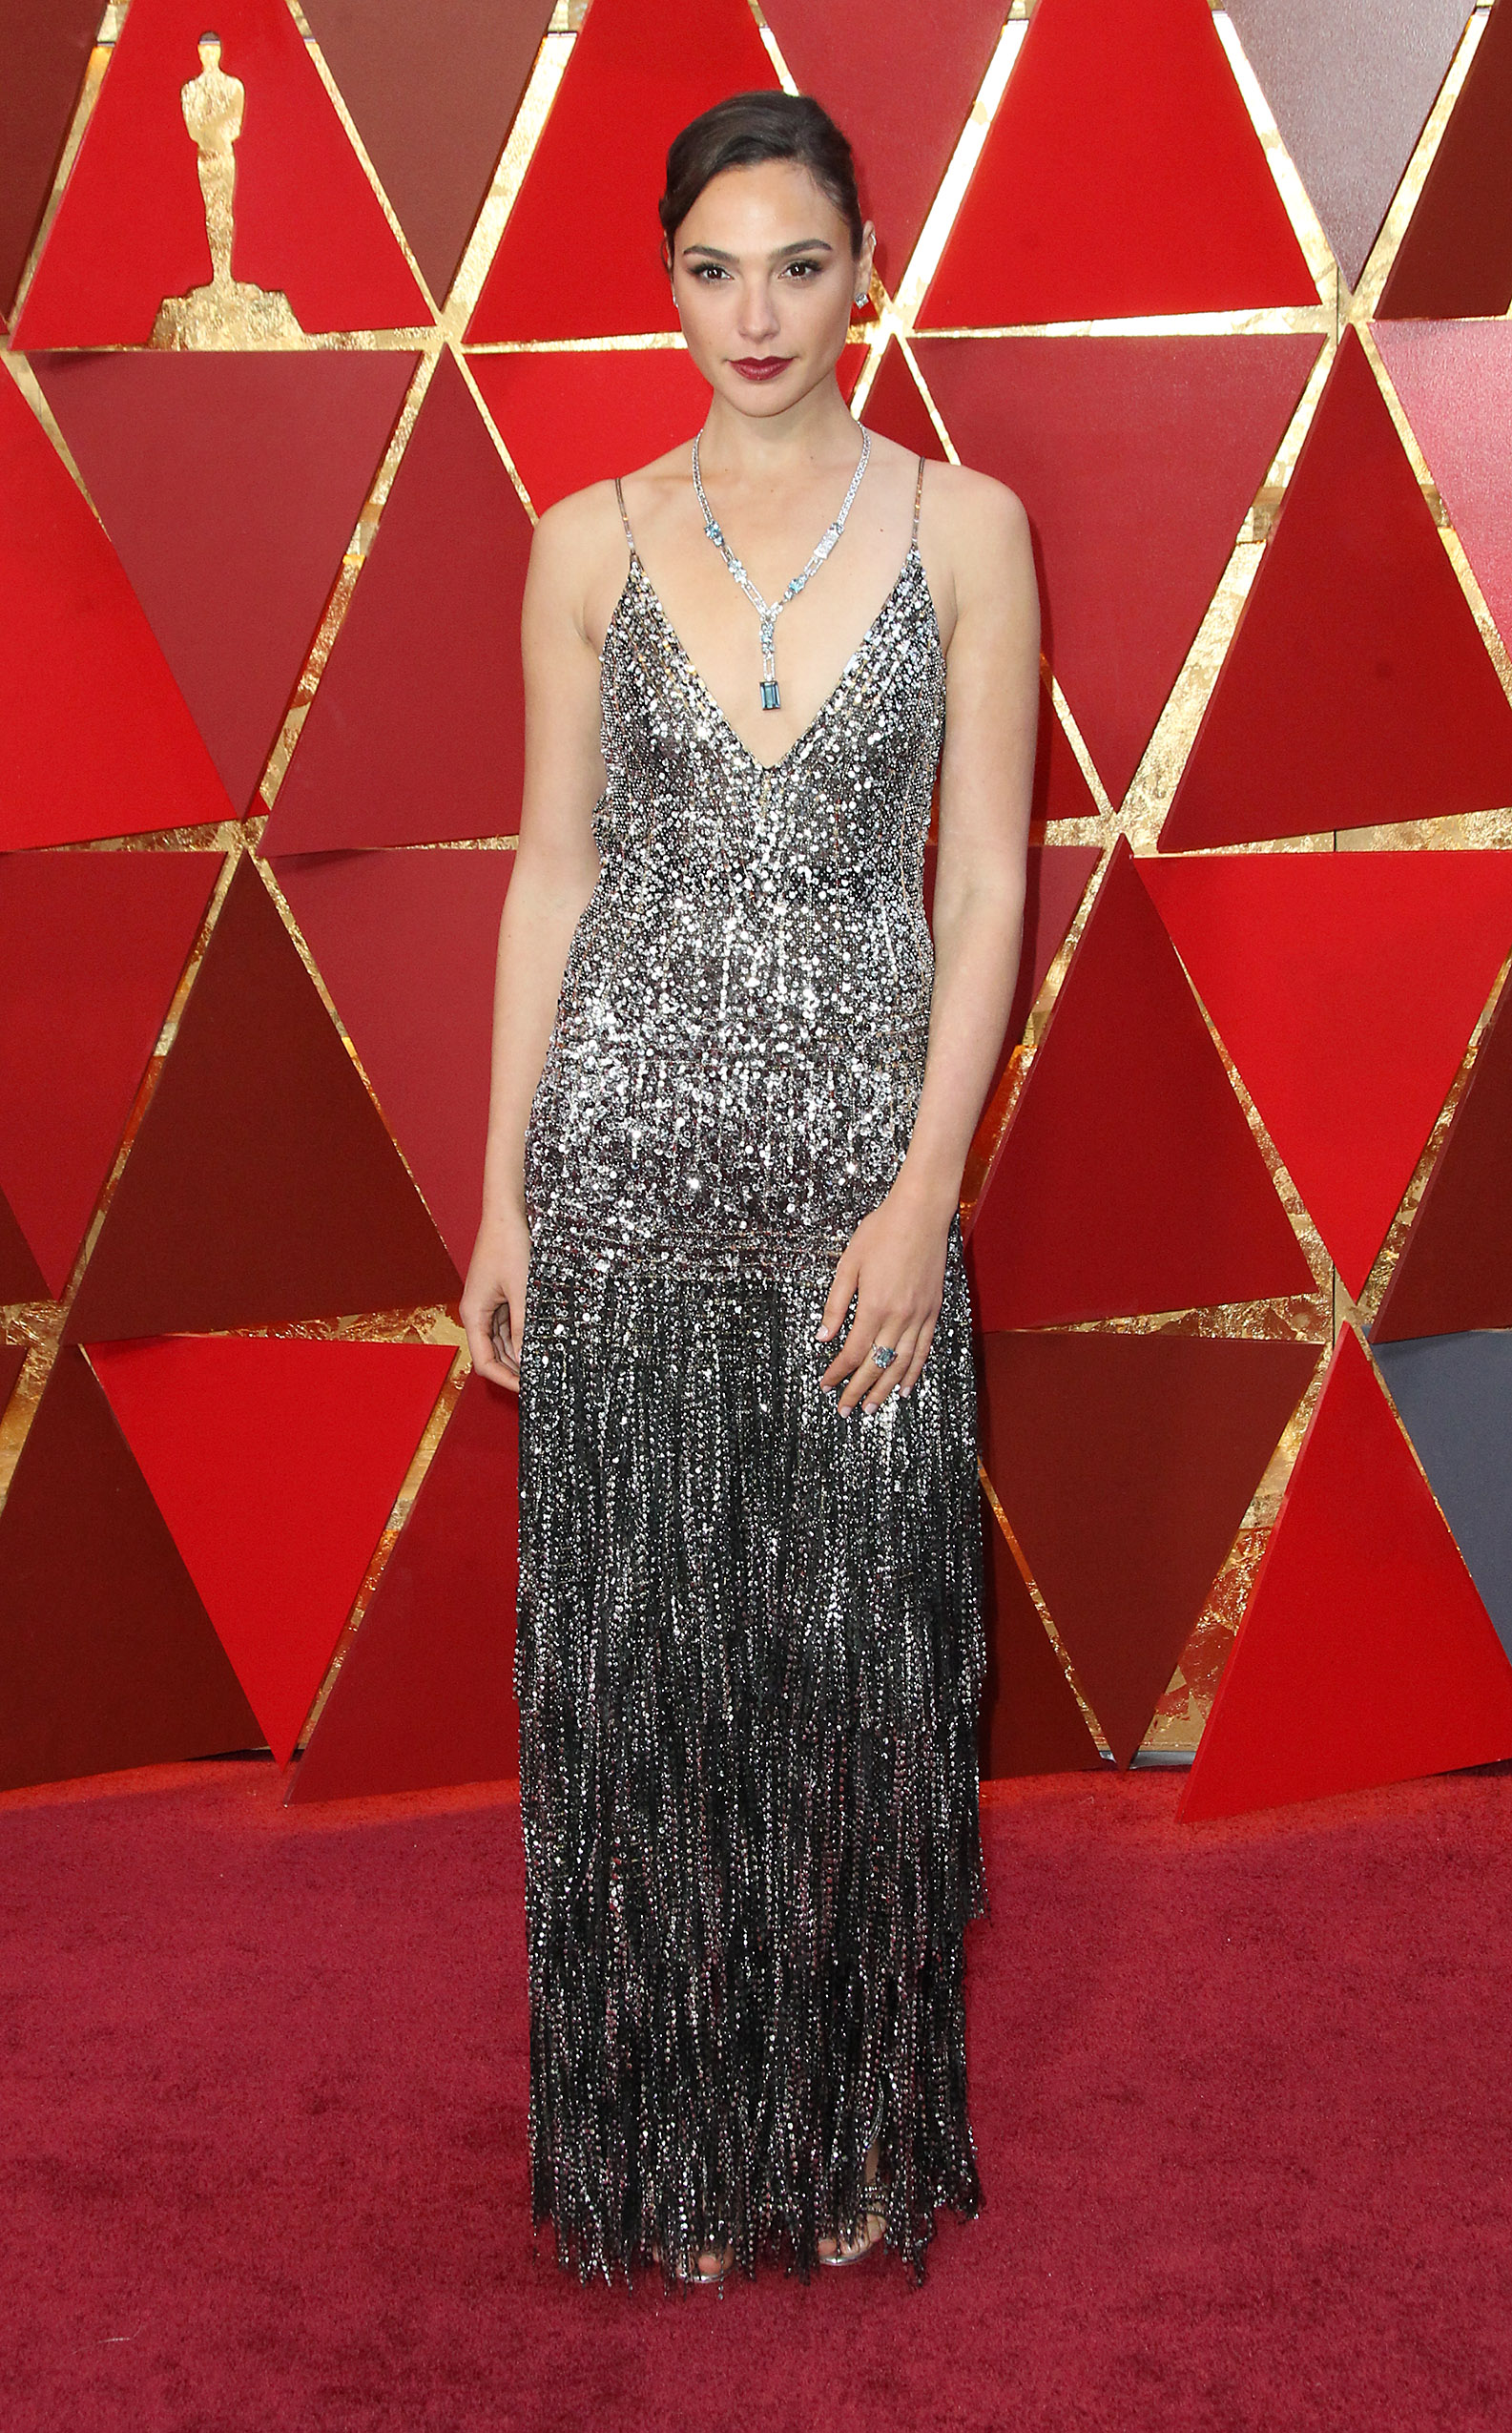 Gal Gadot{&amp;nbsp;}arrives at the 90th Annual Academy Awards (Oscars) held at the Dolby Theater in Hollywood, California. (Image: Adriana M. Barraza/WENN.com)<p></p>